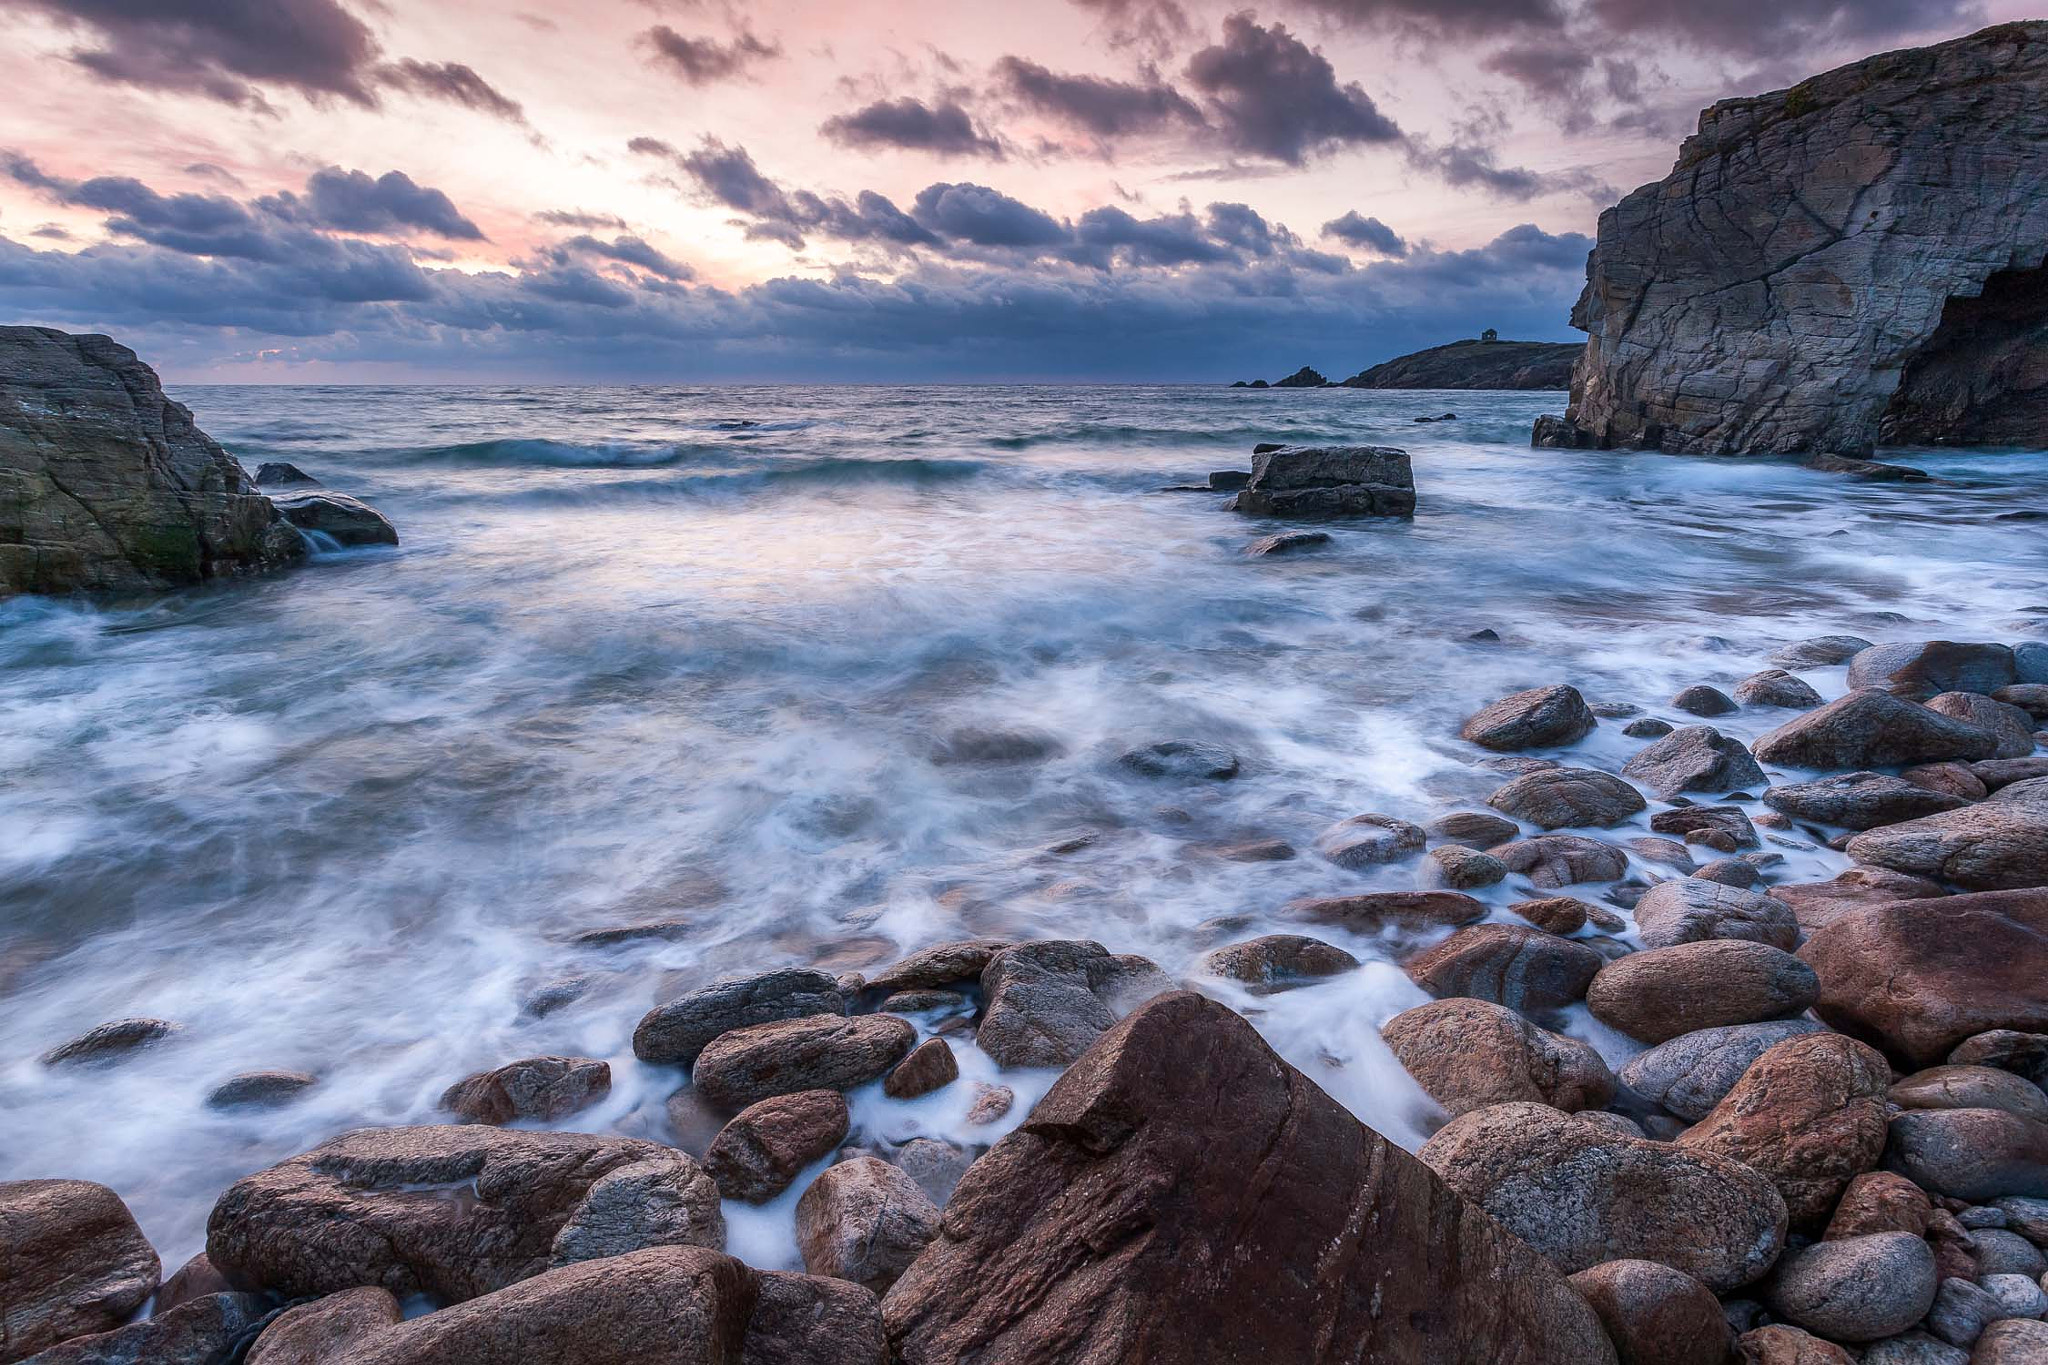 Photograph Cote Sauvage by richaix . on 500px